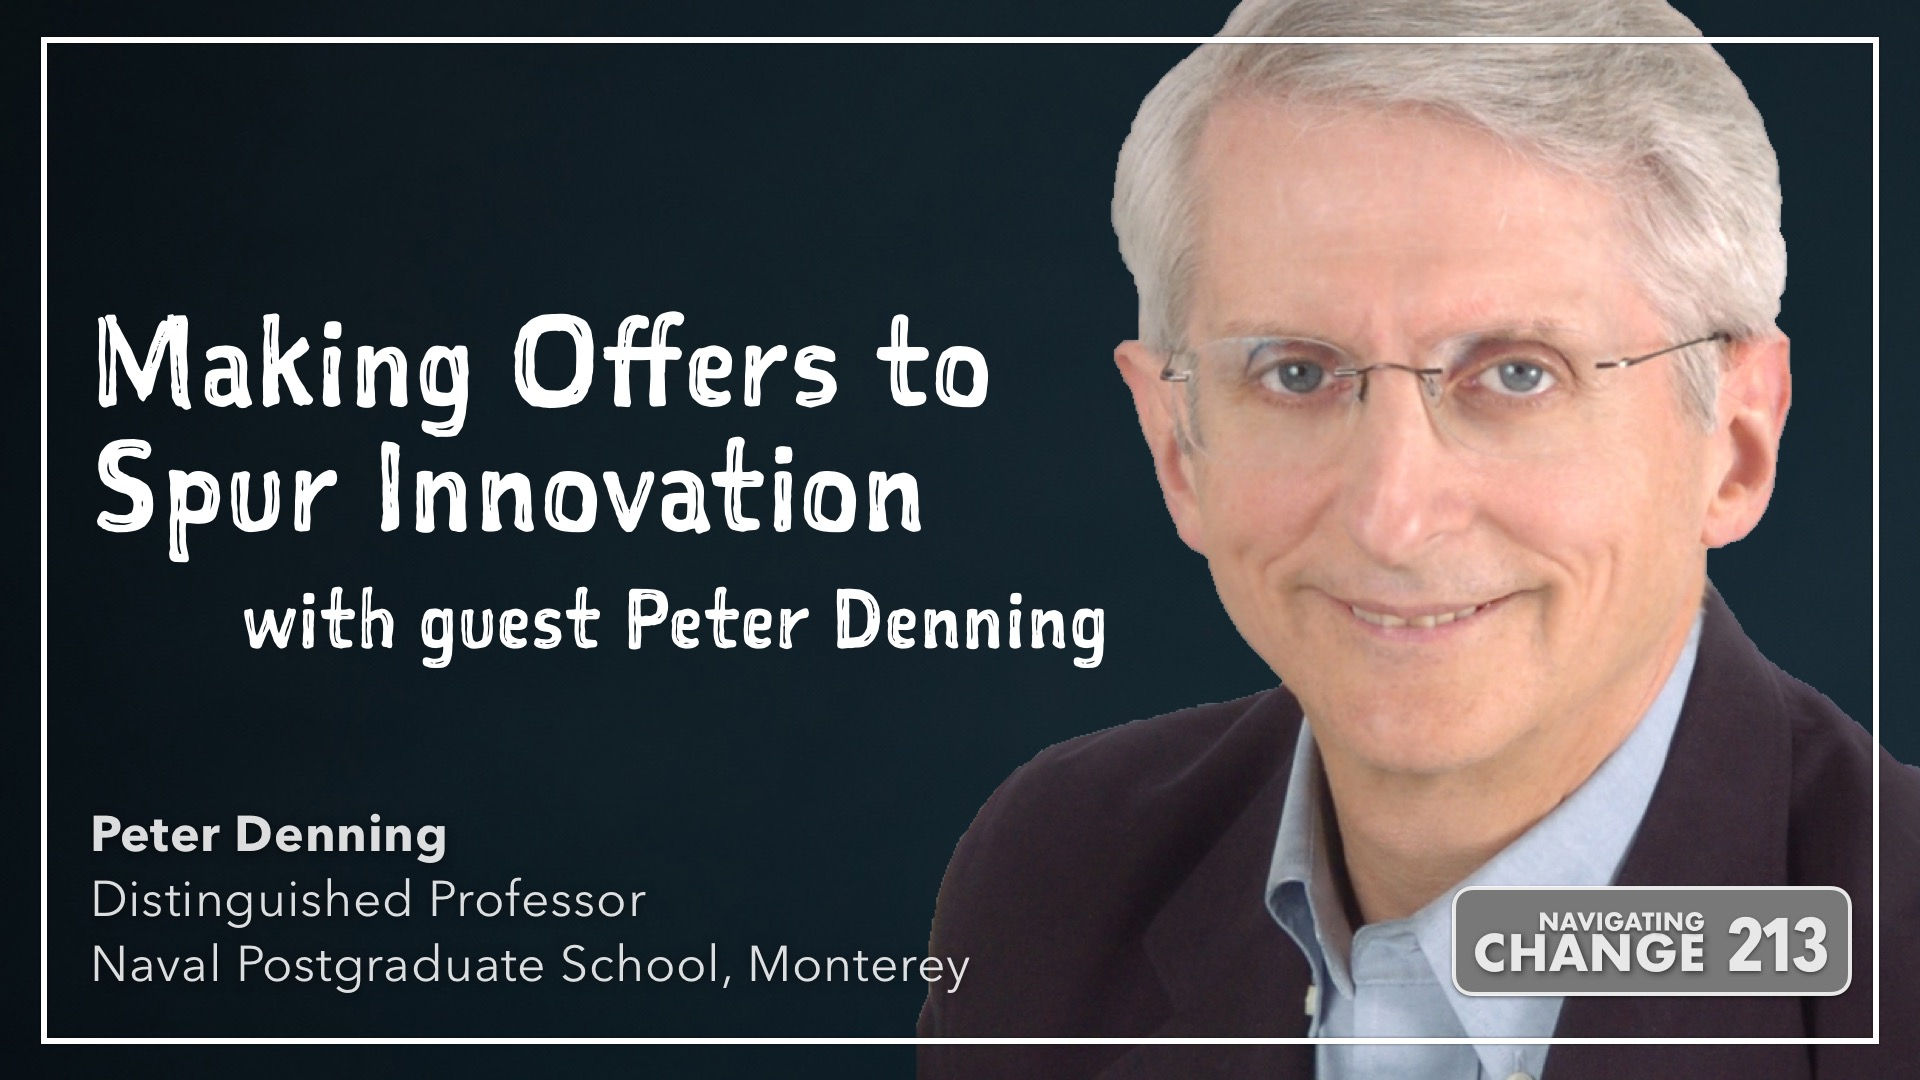 Making Offers to Spur Innovation with Peter Denning